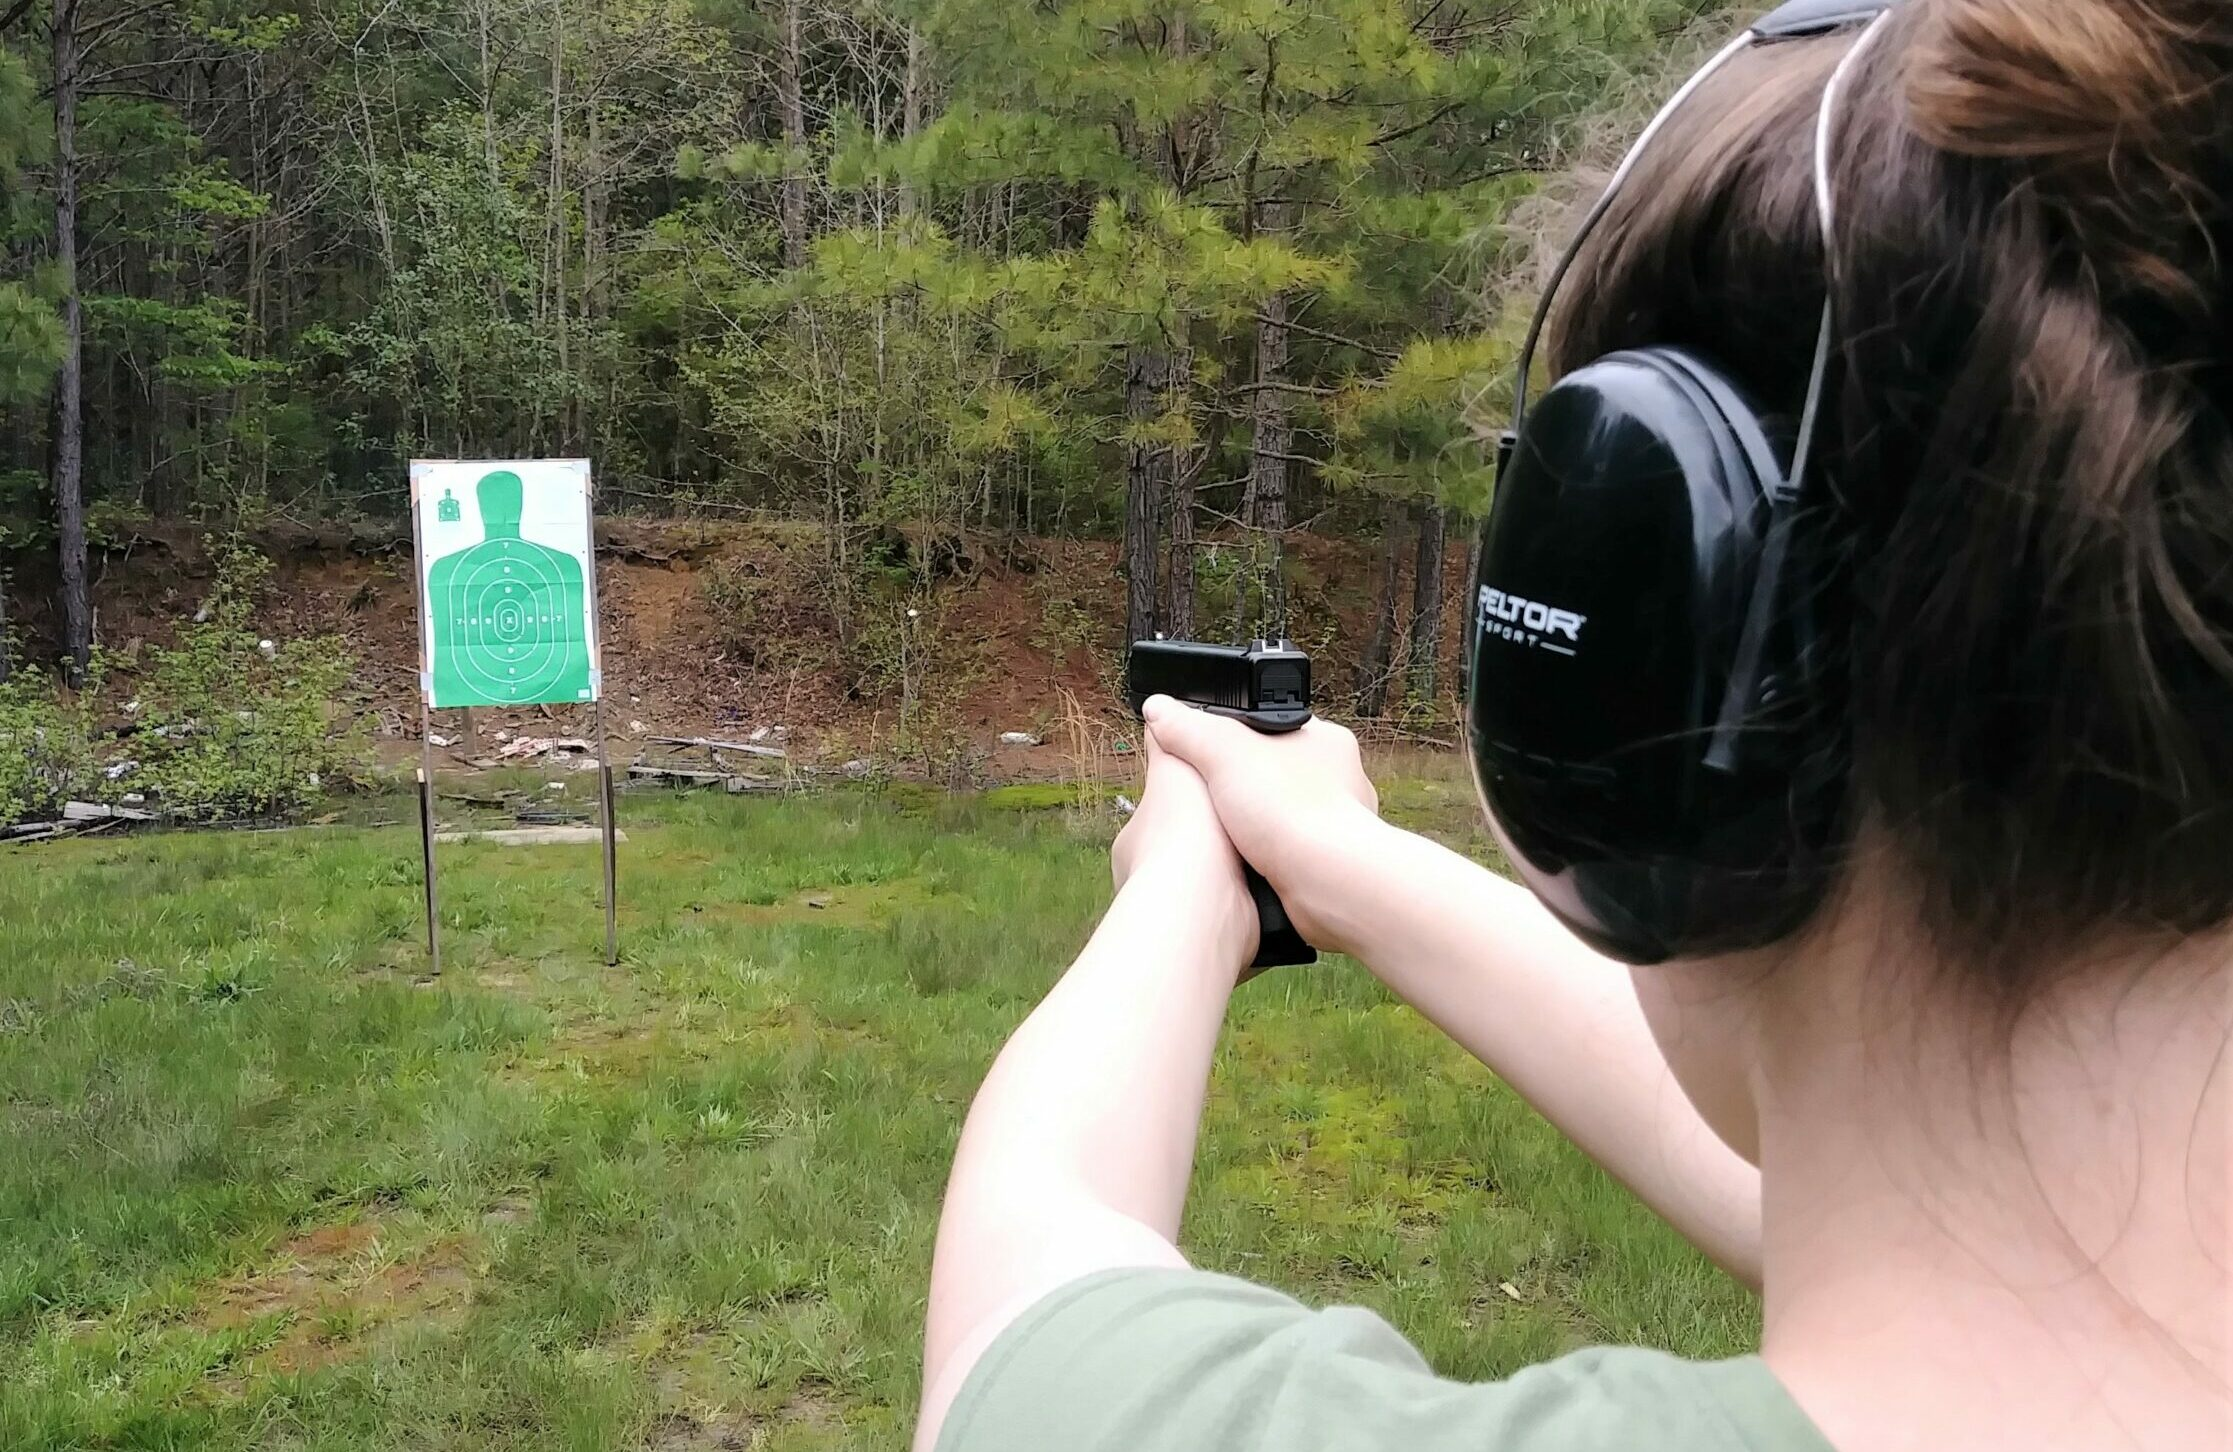 Shooting the Mozambique drill at the range